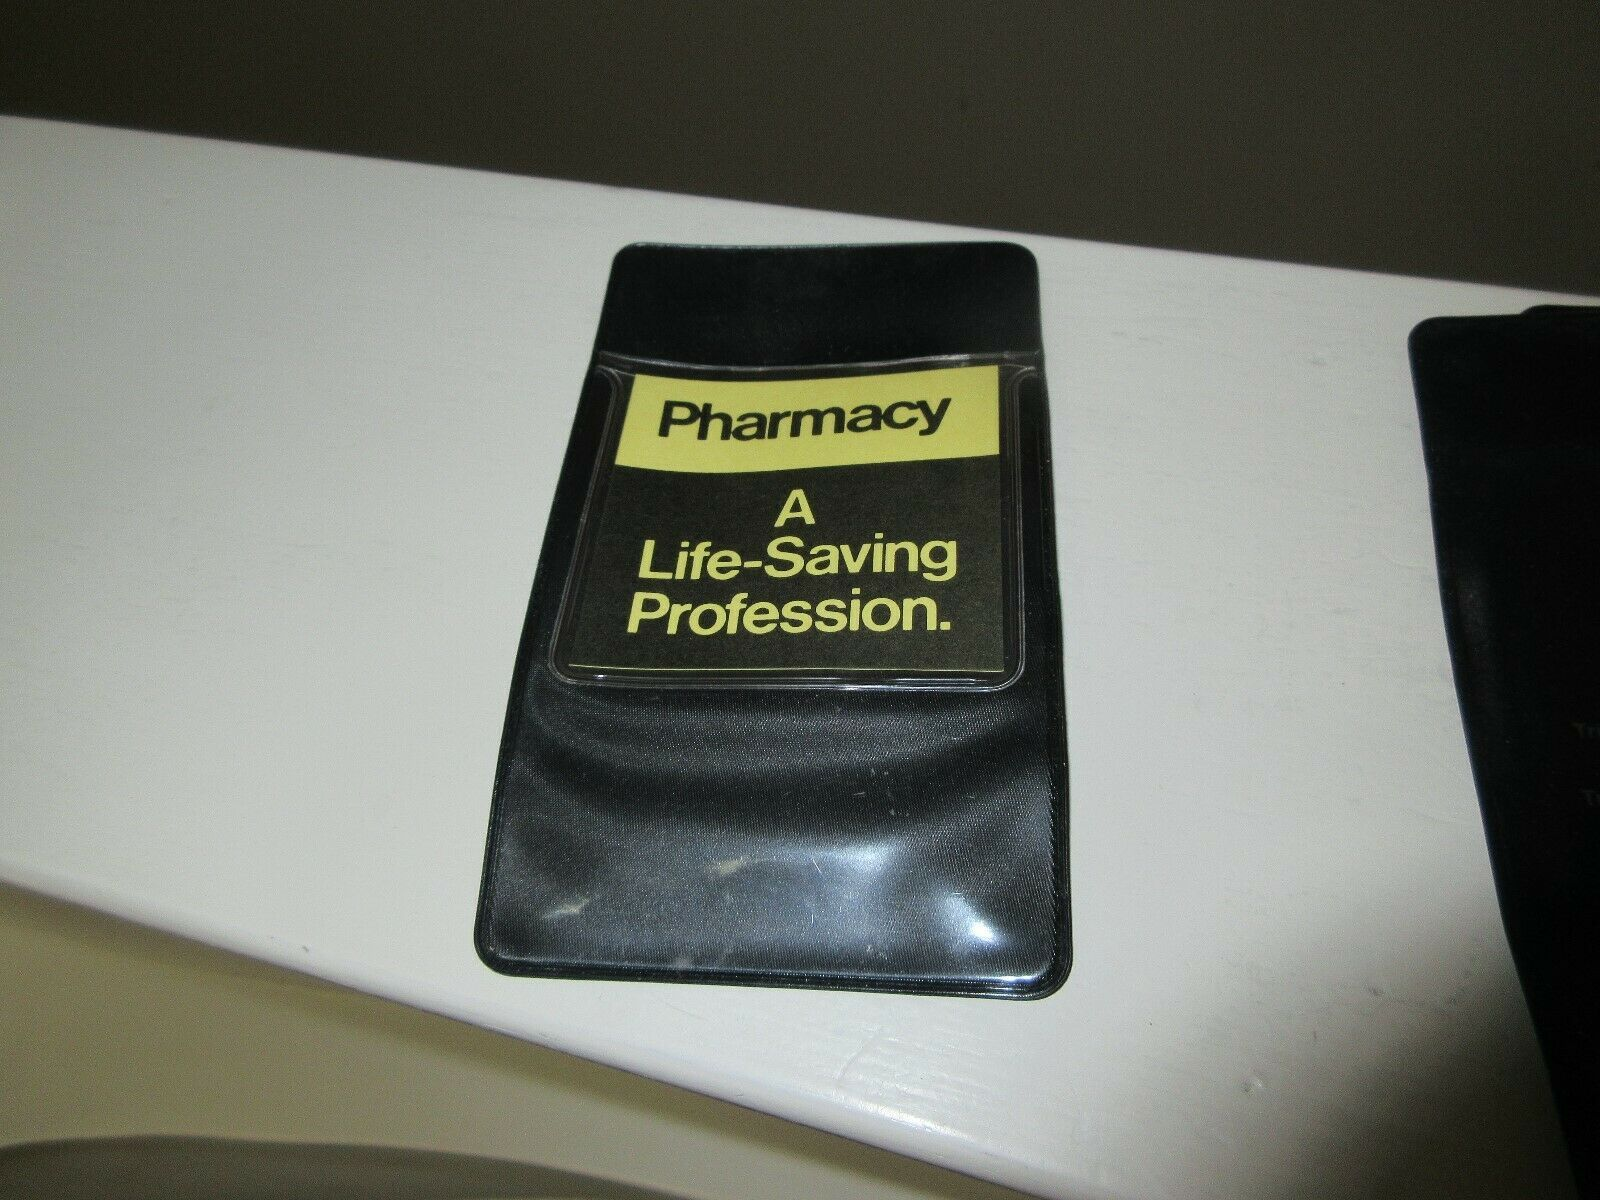 Rx, Pharmacy , Drugstore , Promotional Item , Shirt Ink Pocket Protector , Lot 5 image 3